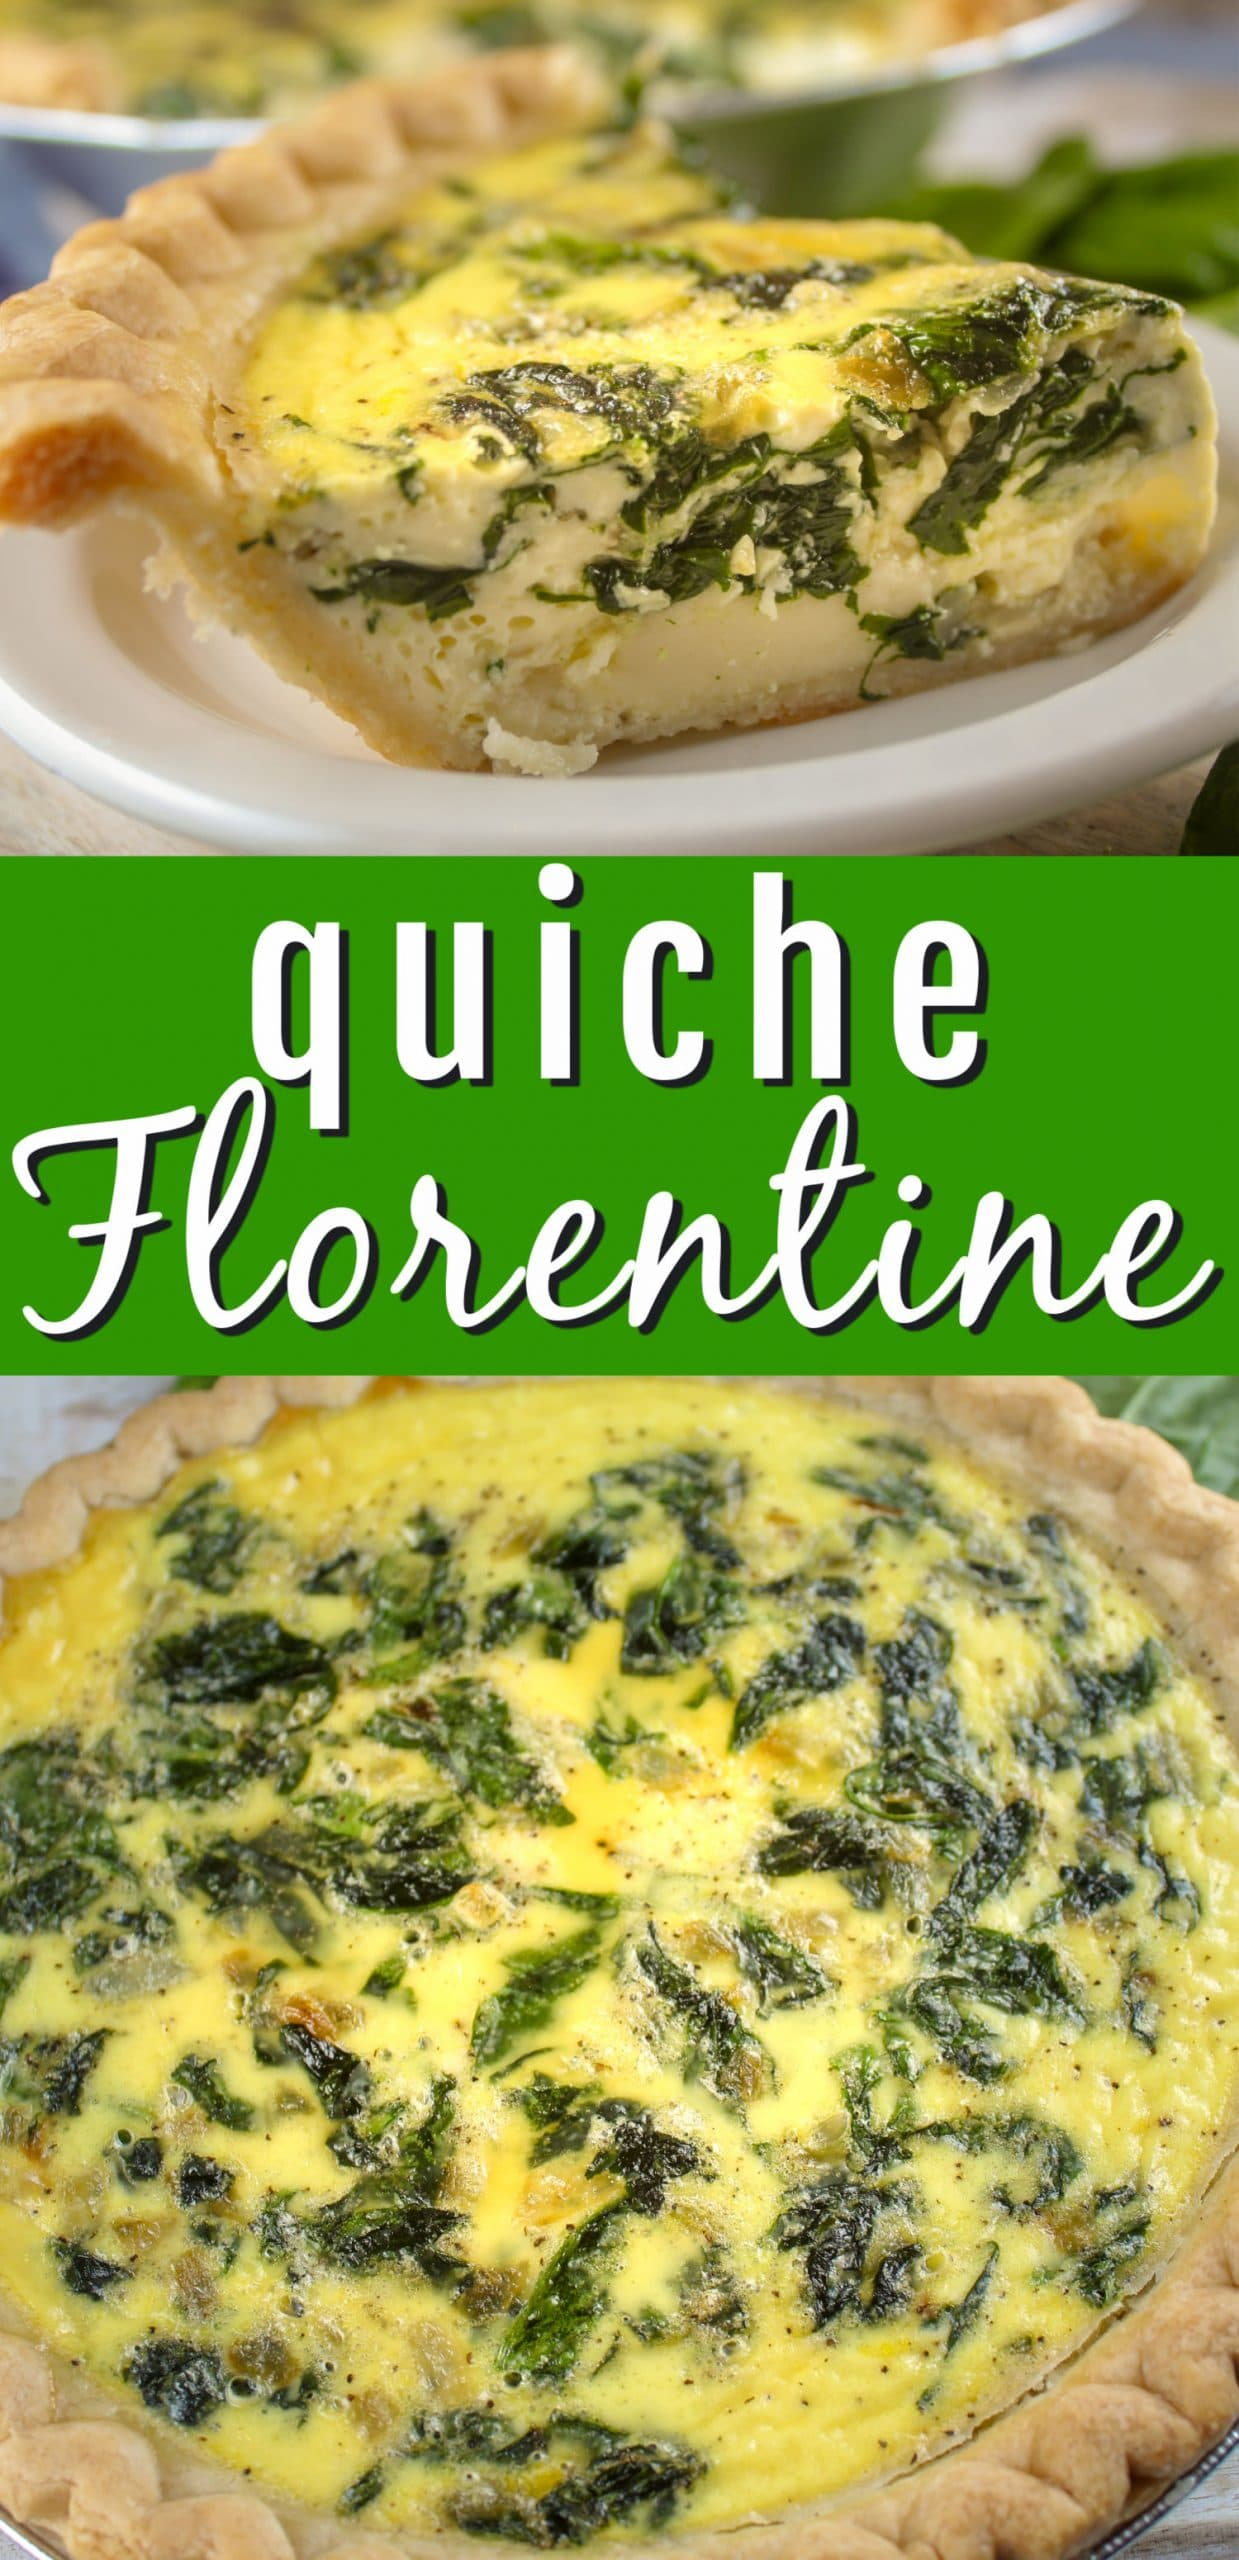 Quiche Florentine is a fancy way of saying spinach quiche and let me tell you - it's a fancy way of saying delicious! I'm normally a meat and cheese girl when it comes to quiche but this delicate dish with sautéed spinach and onions on top of Swiss cheese won me over! via @foodhussy